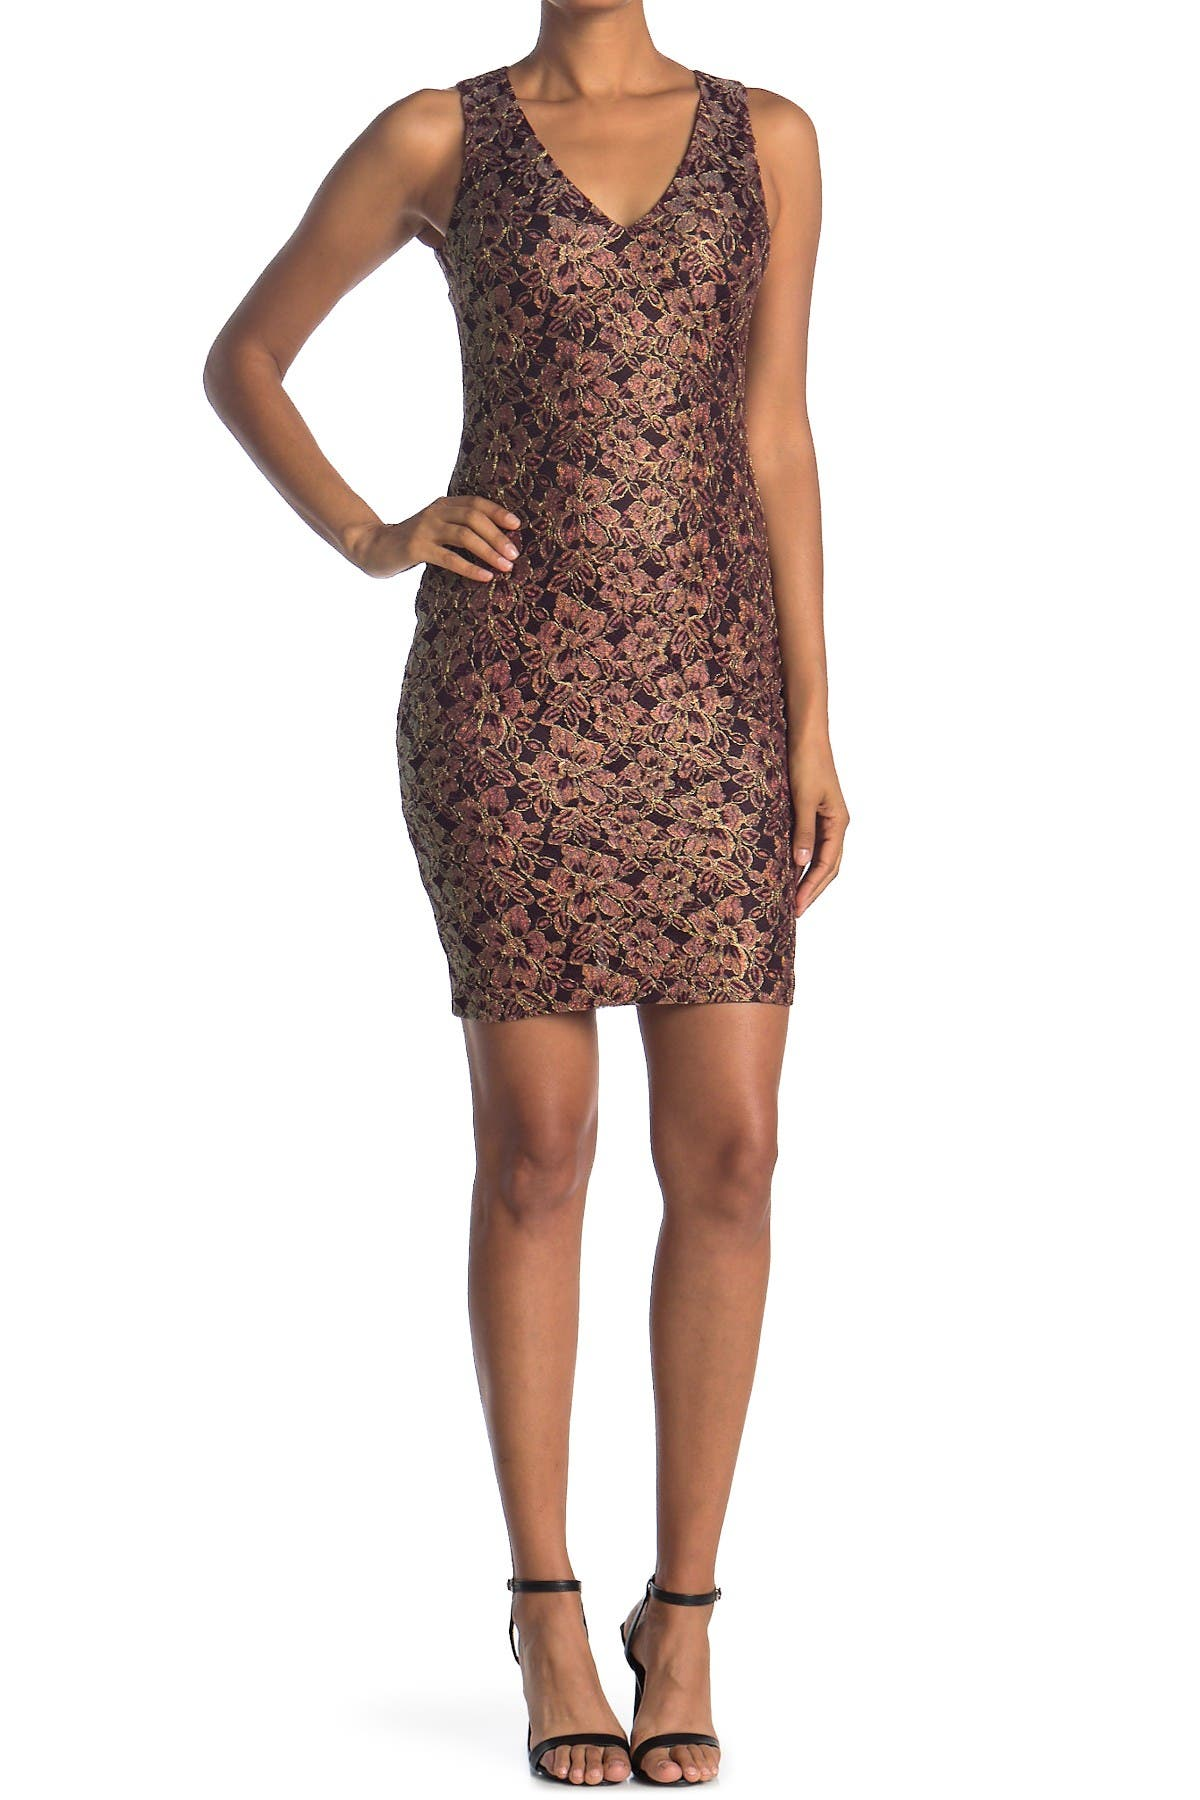 Image of GUESS V-Neck Lace Bodycon Dress